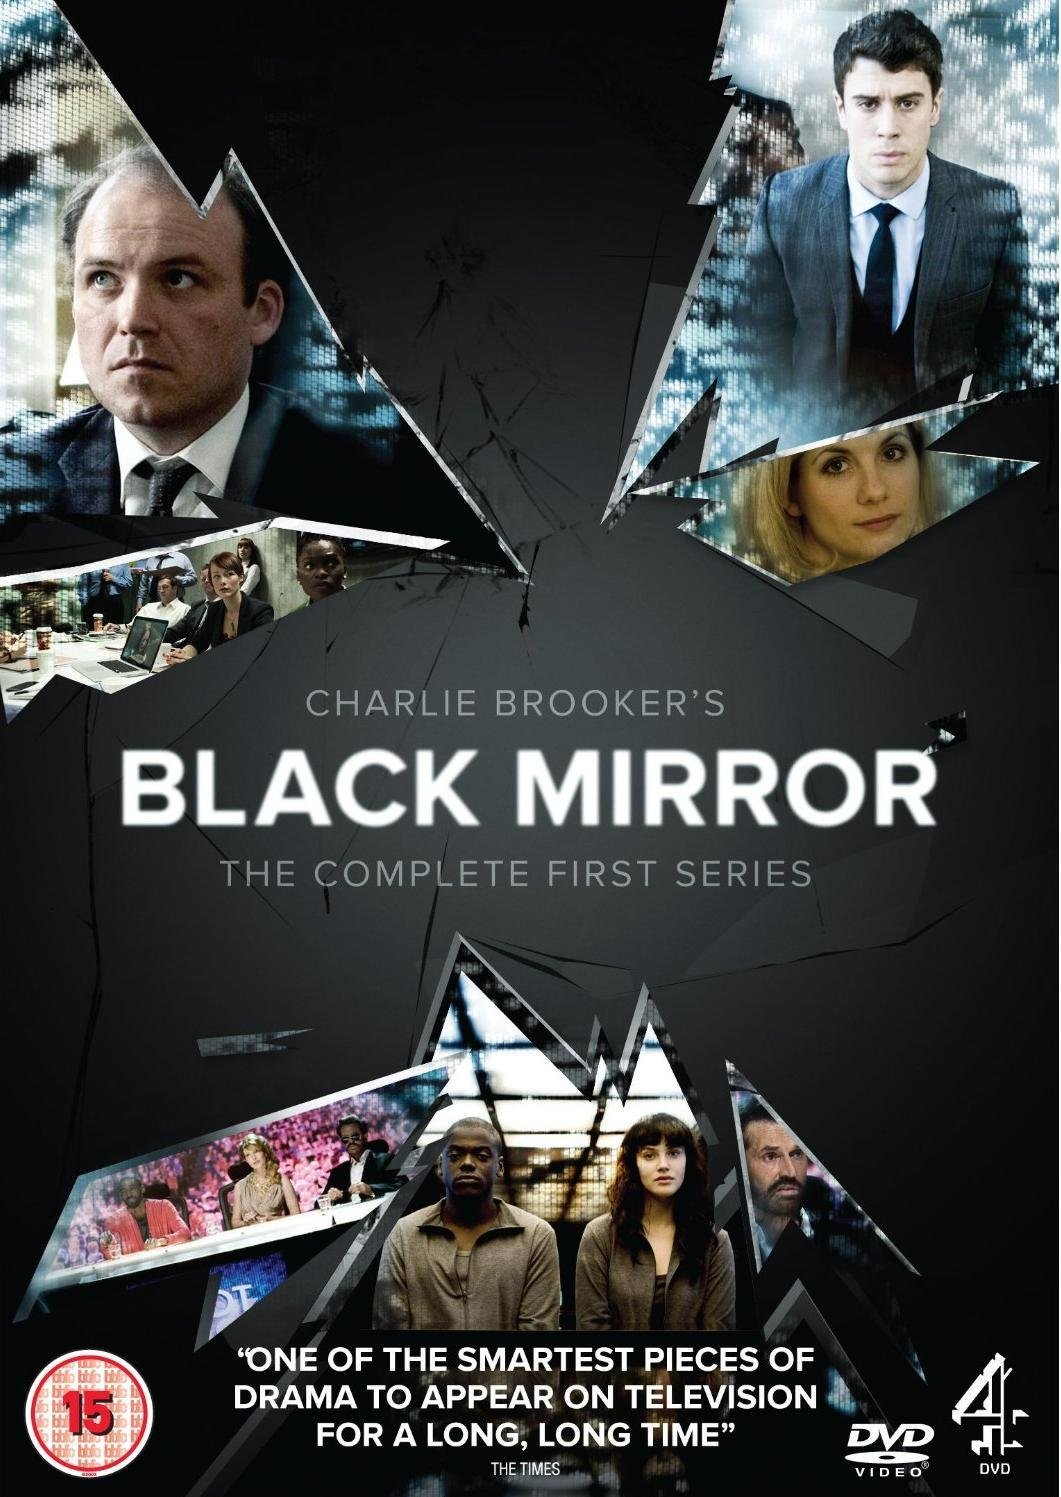 Black Mirror TV show